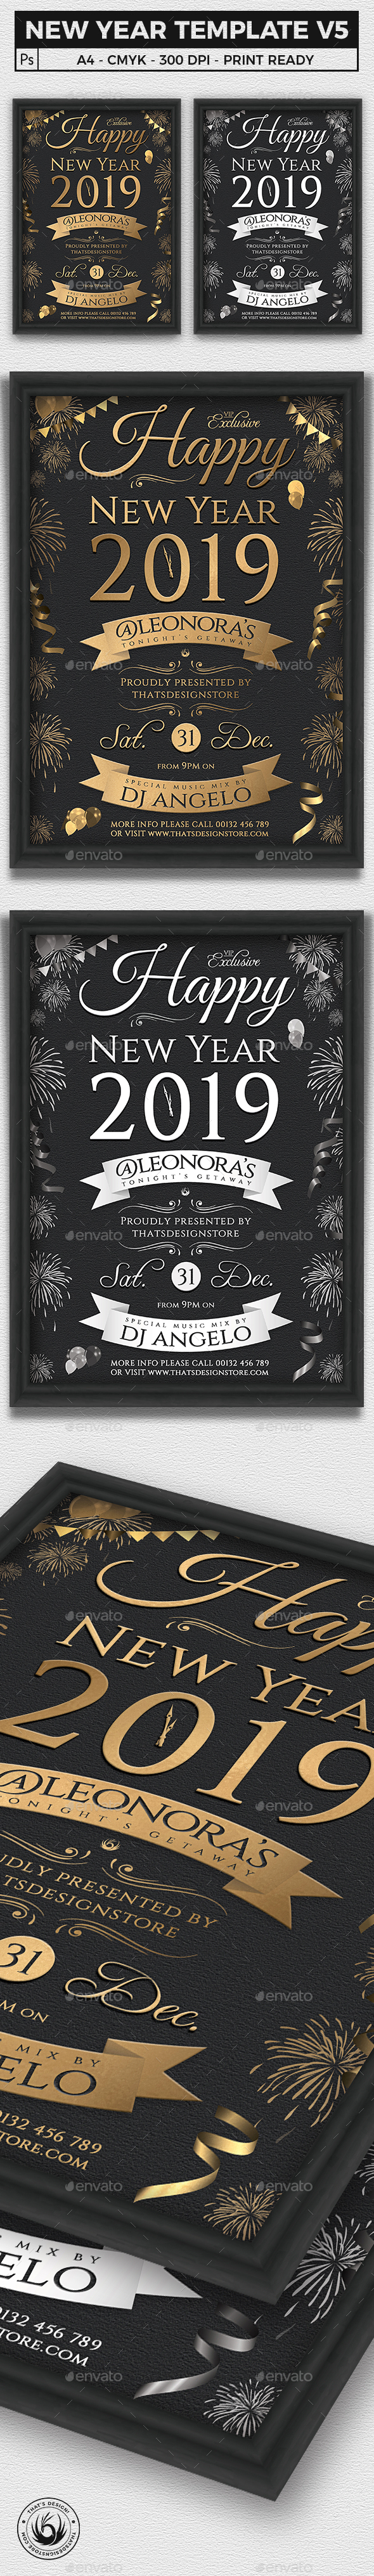 New Year Flyer Template V5 - Clubs & Parties Events